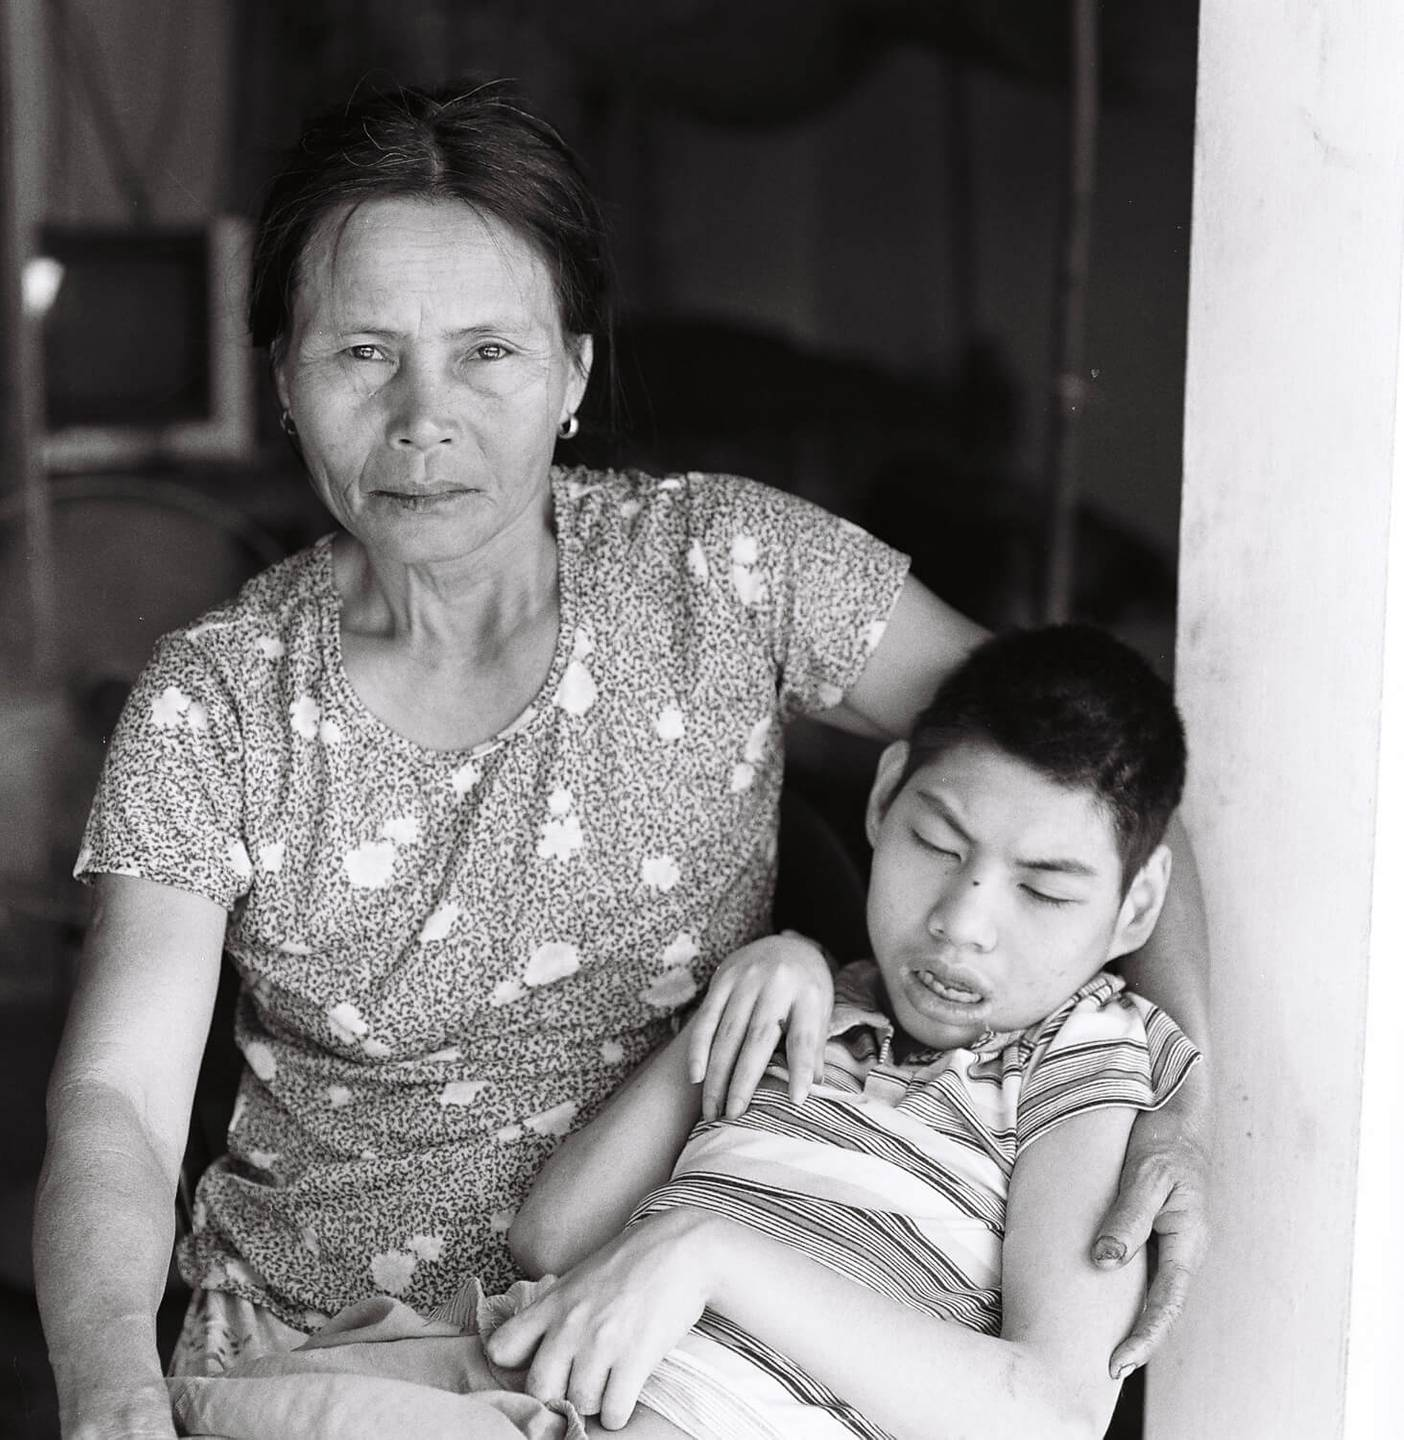 An Asian mother holding her deformed son, looking intensely into the camera.